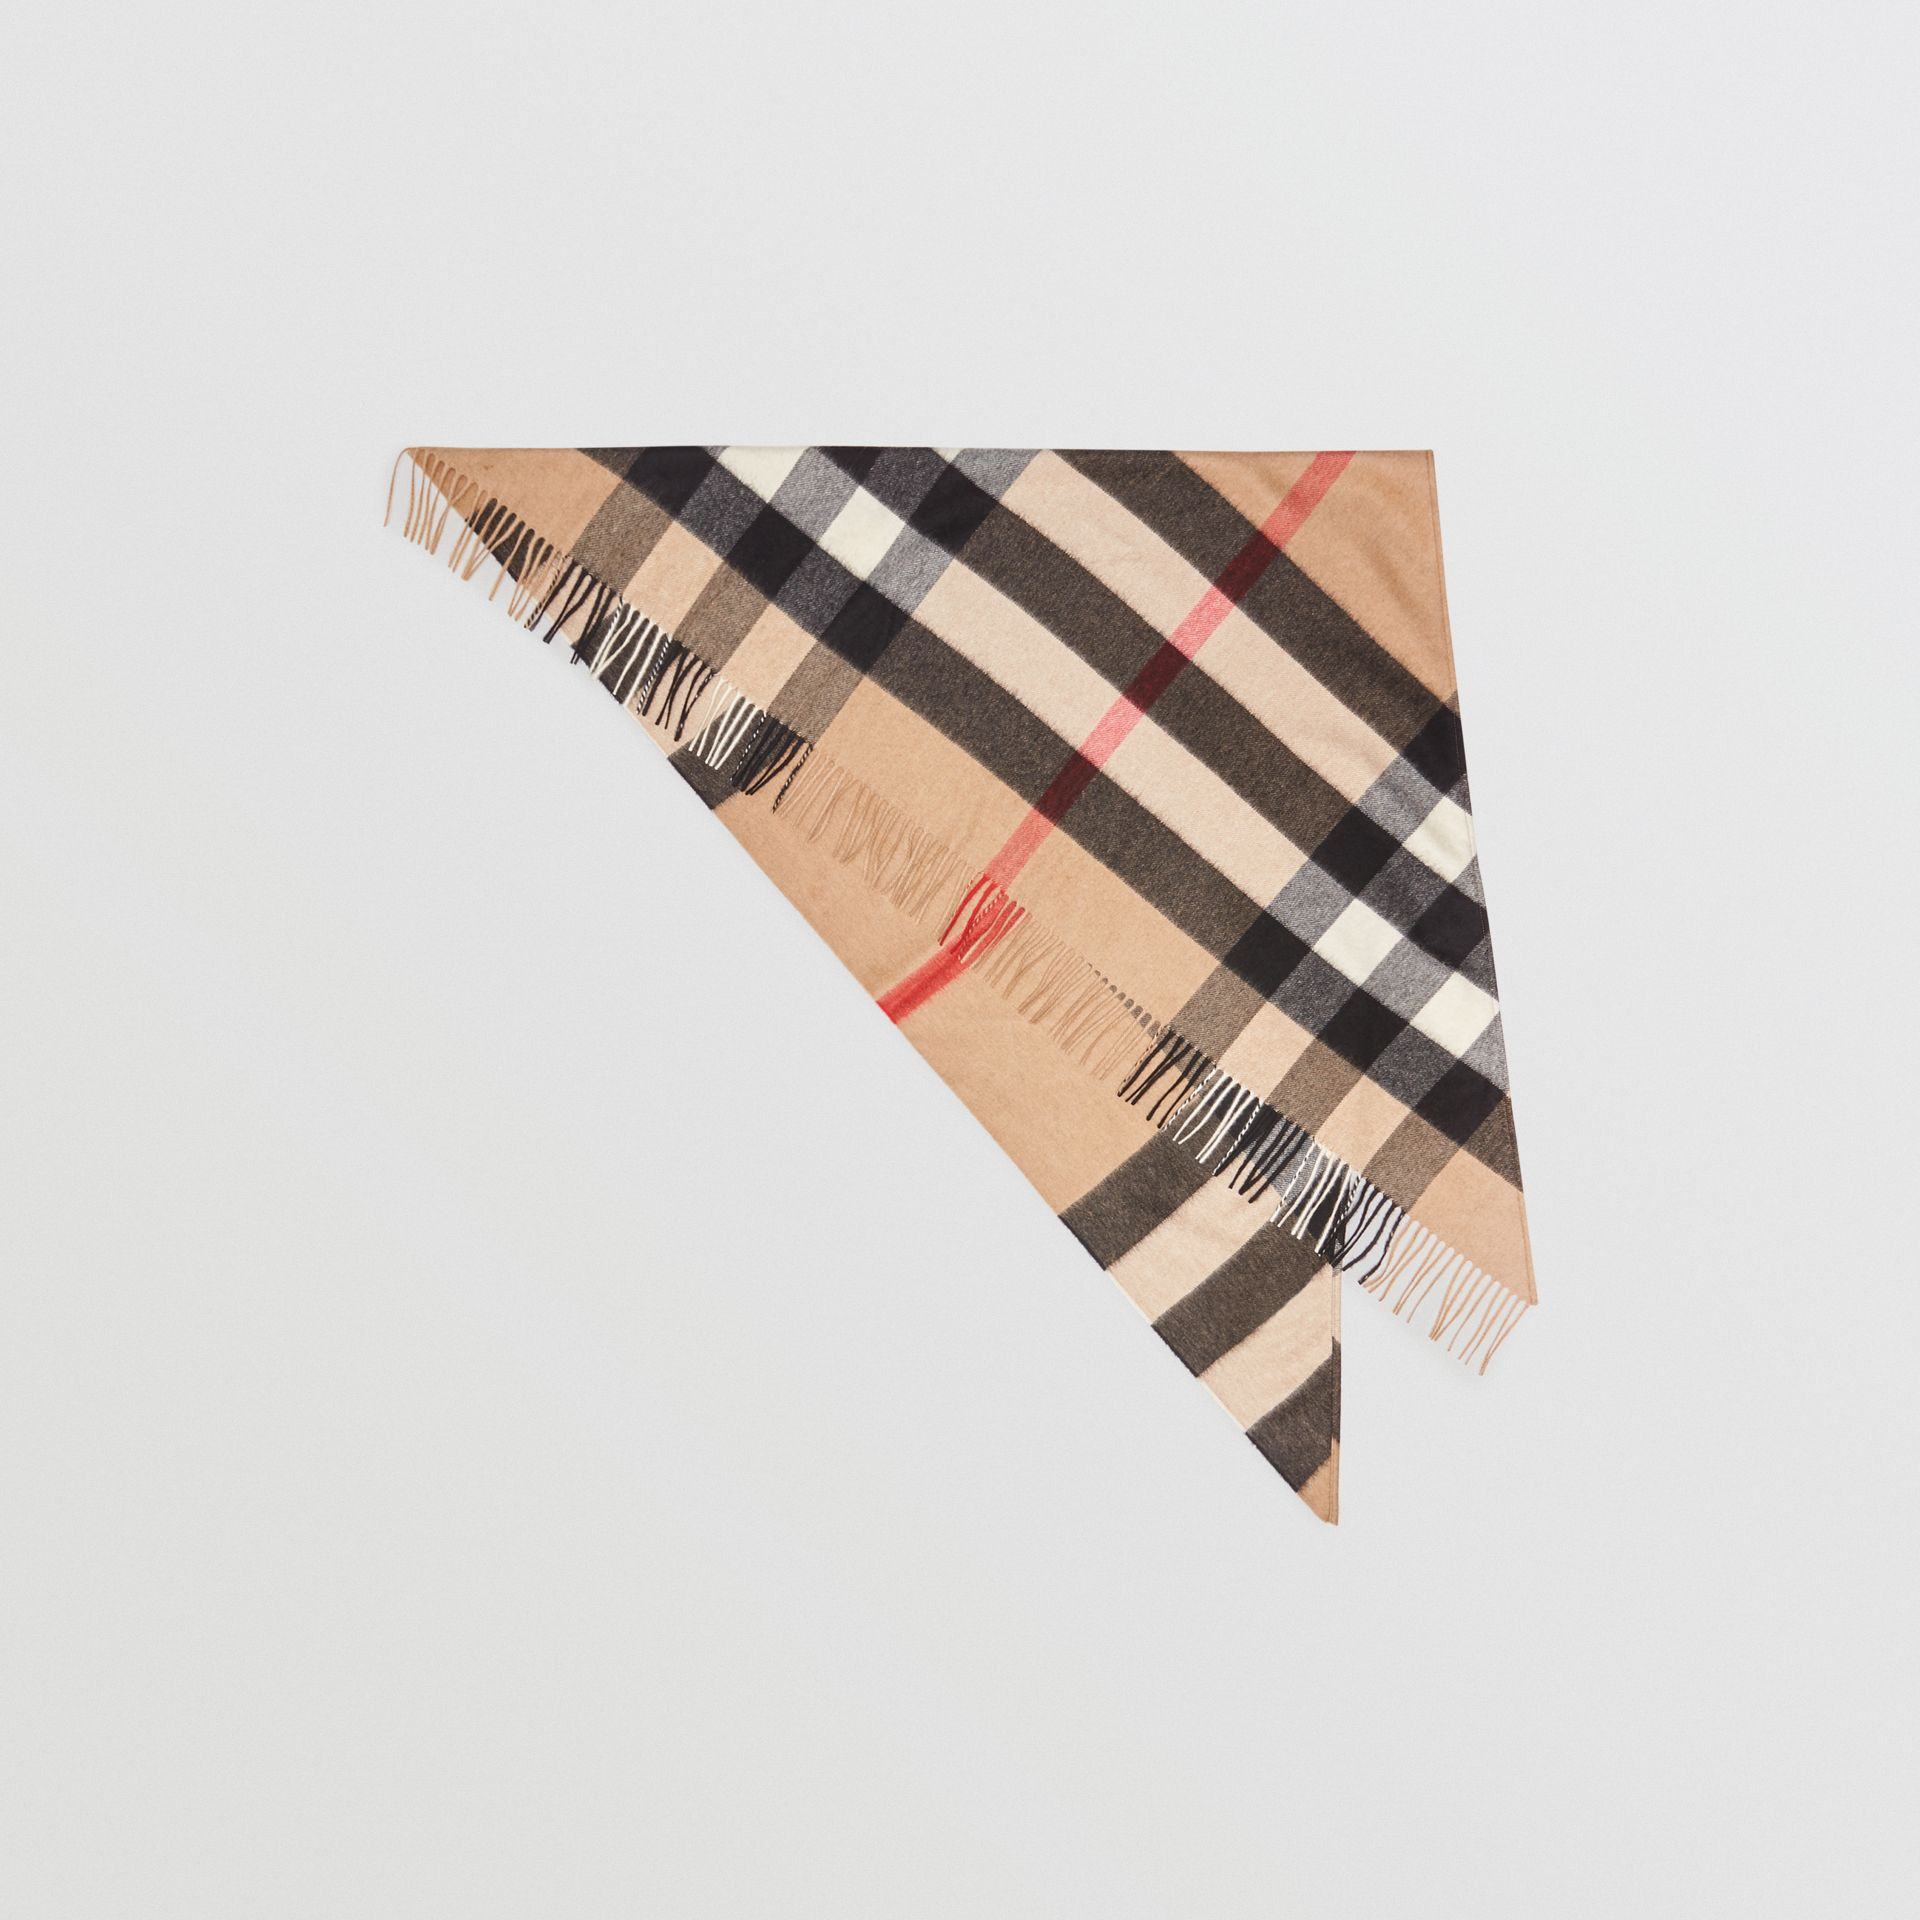 6e0b7a5f64946 The Burberry Bandana in Check Cashmere in Camel